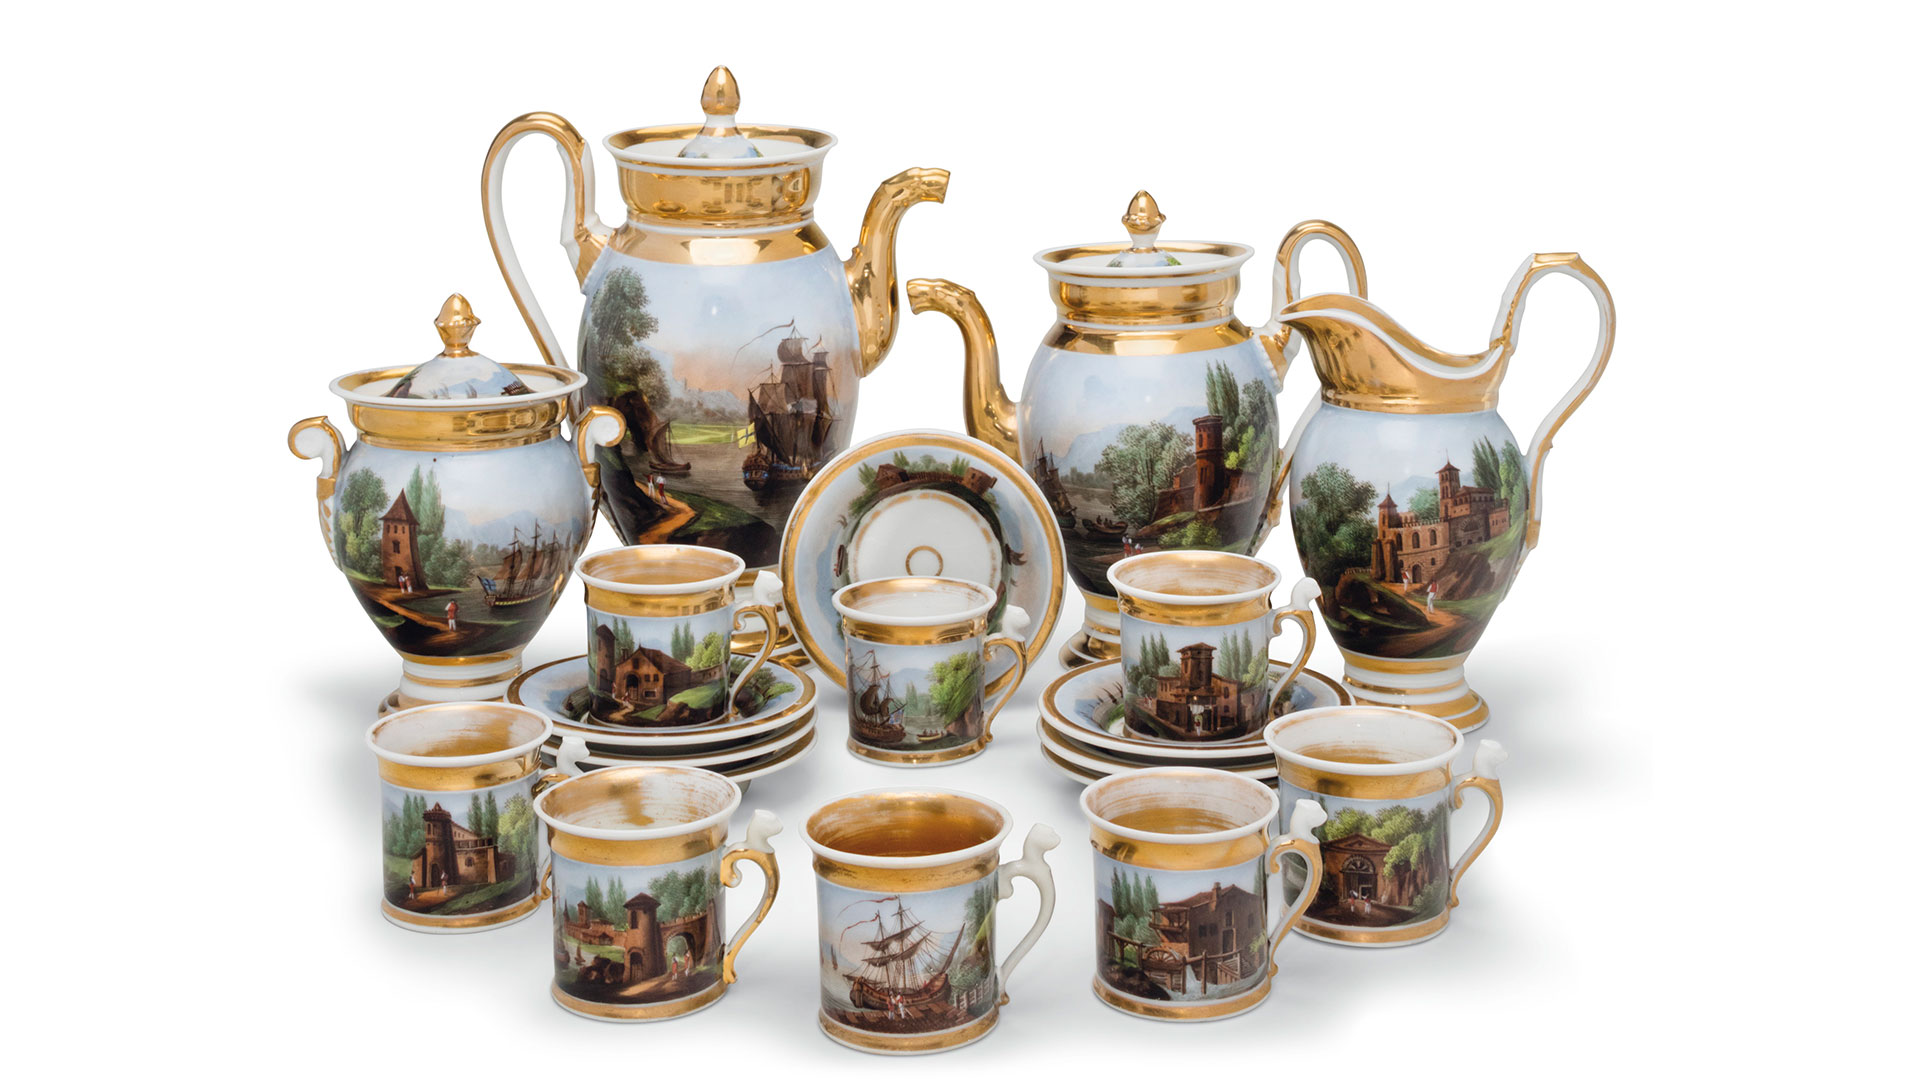 Paris porcelain gold-ground coffee service, circa 1830